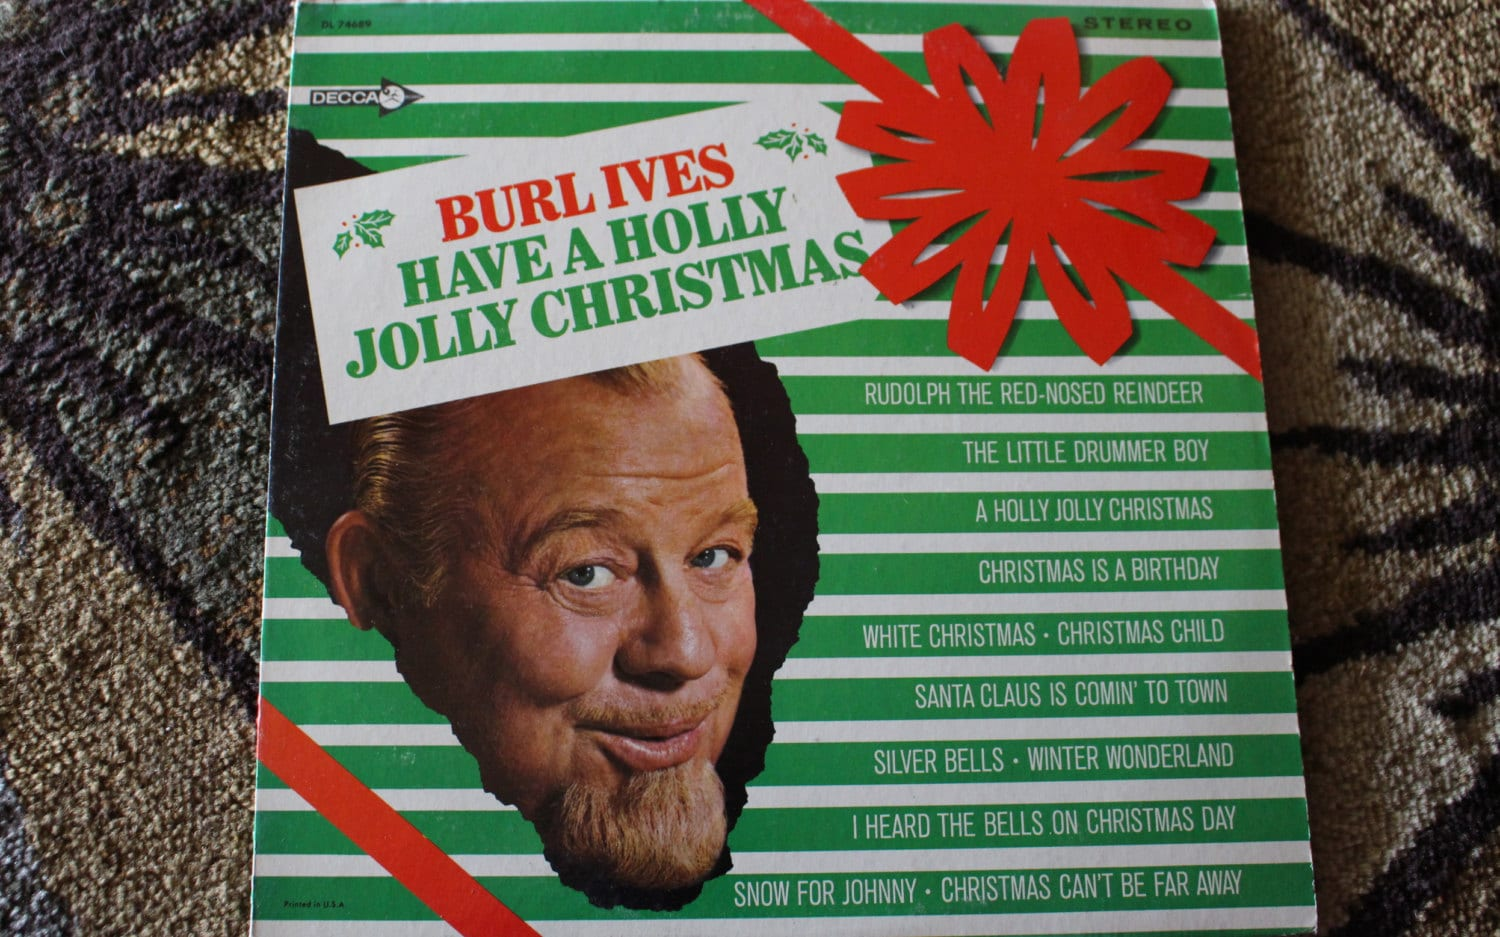 Burl Ives Christmas.David Jones Personal Collection Record Album Burl Ives